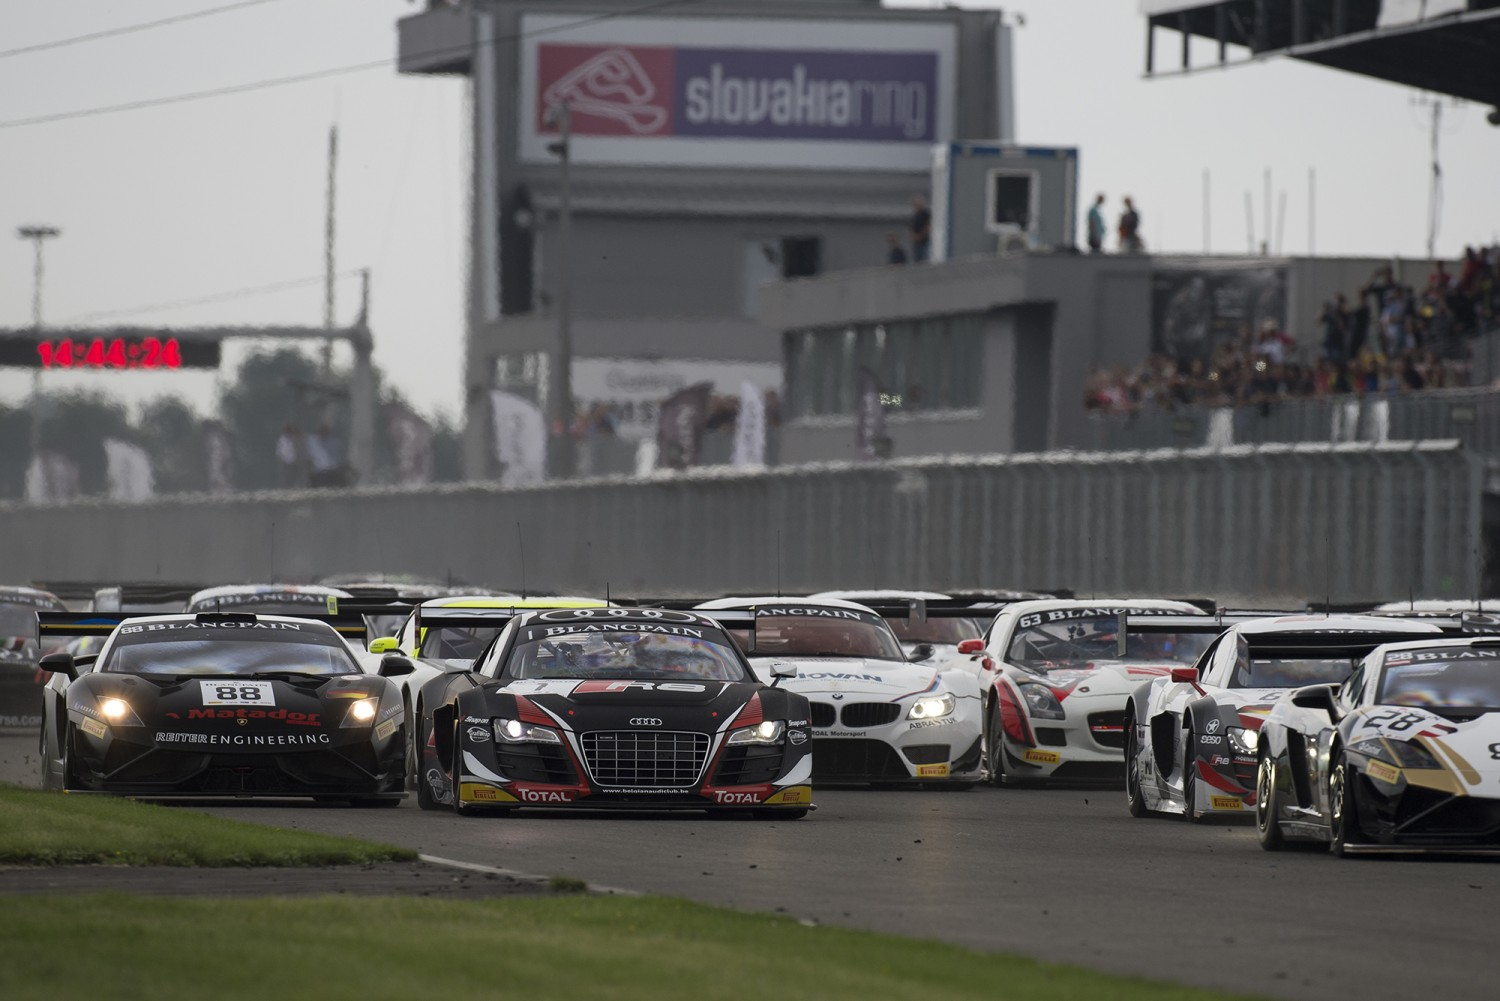 Laurens Vanthoor and Cesar Ramos win dramatic qualifying race